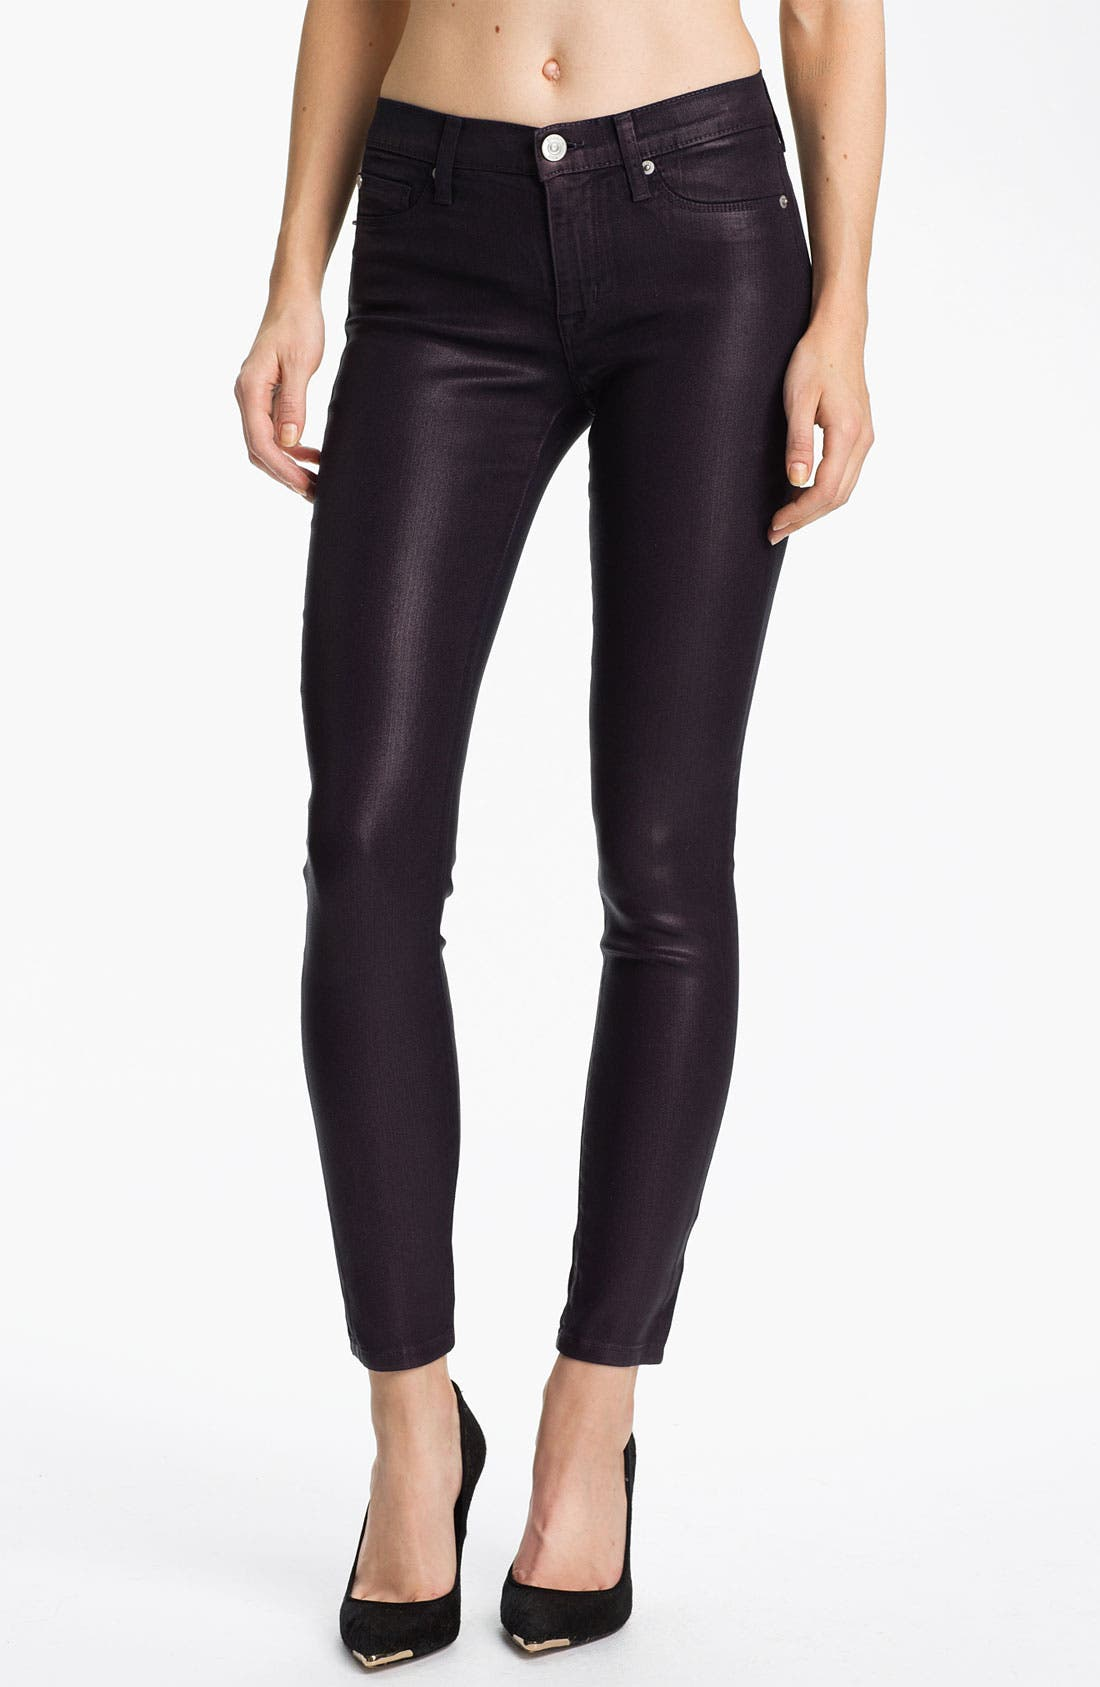 Alternate Image 1 Selected - Hudson Jeans 'Nico' Mid Rise Skinny Stretch Jeans (Gothic Lotita)